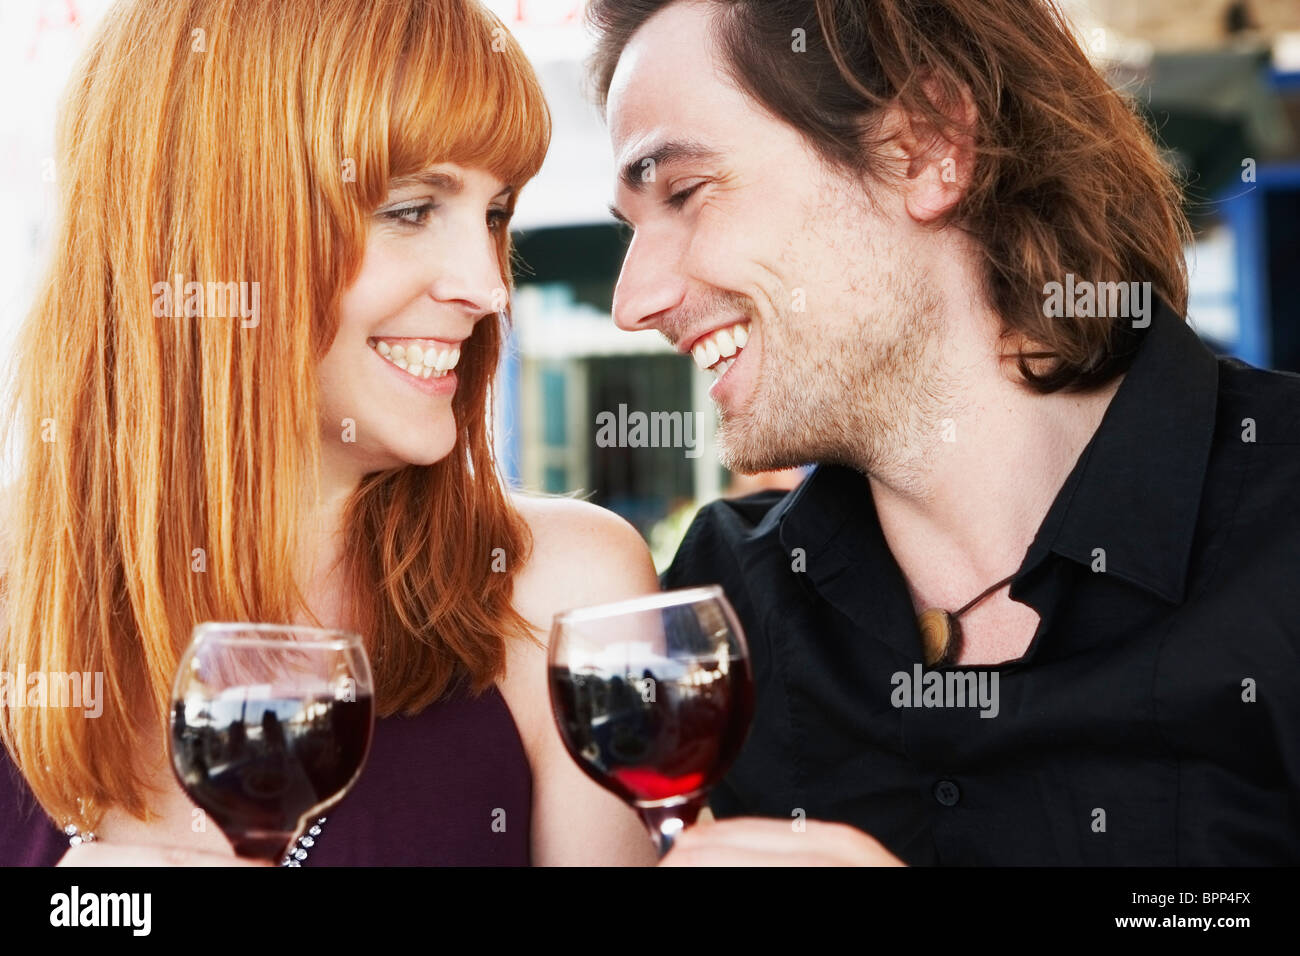 Young couple clinking glasses - Stock Image